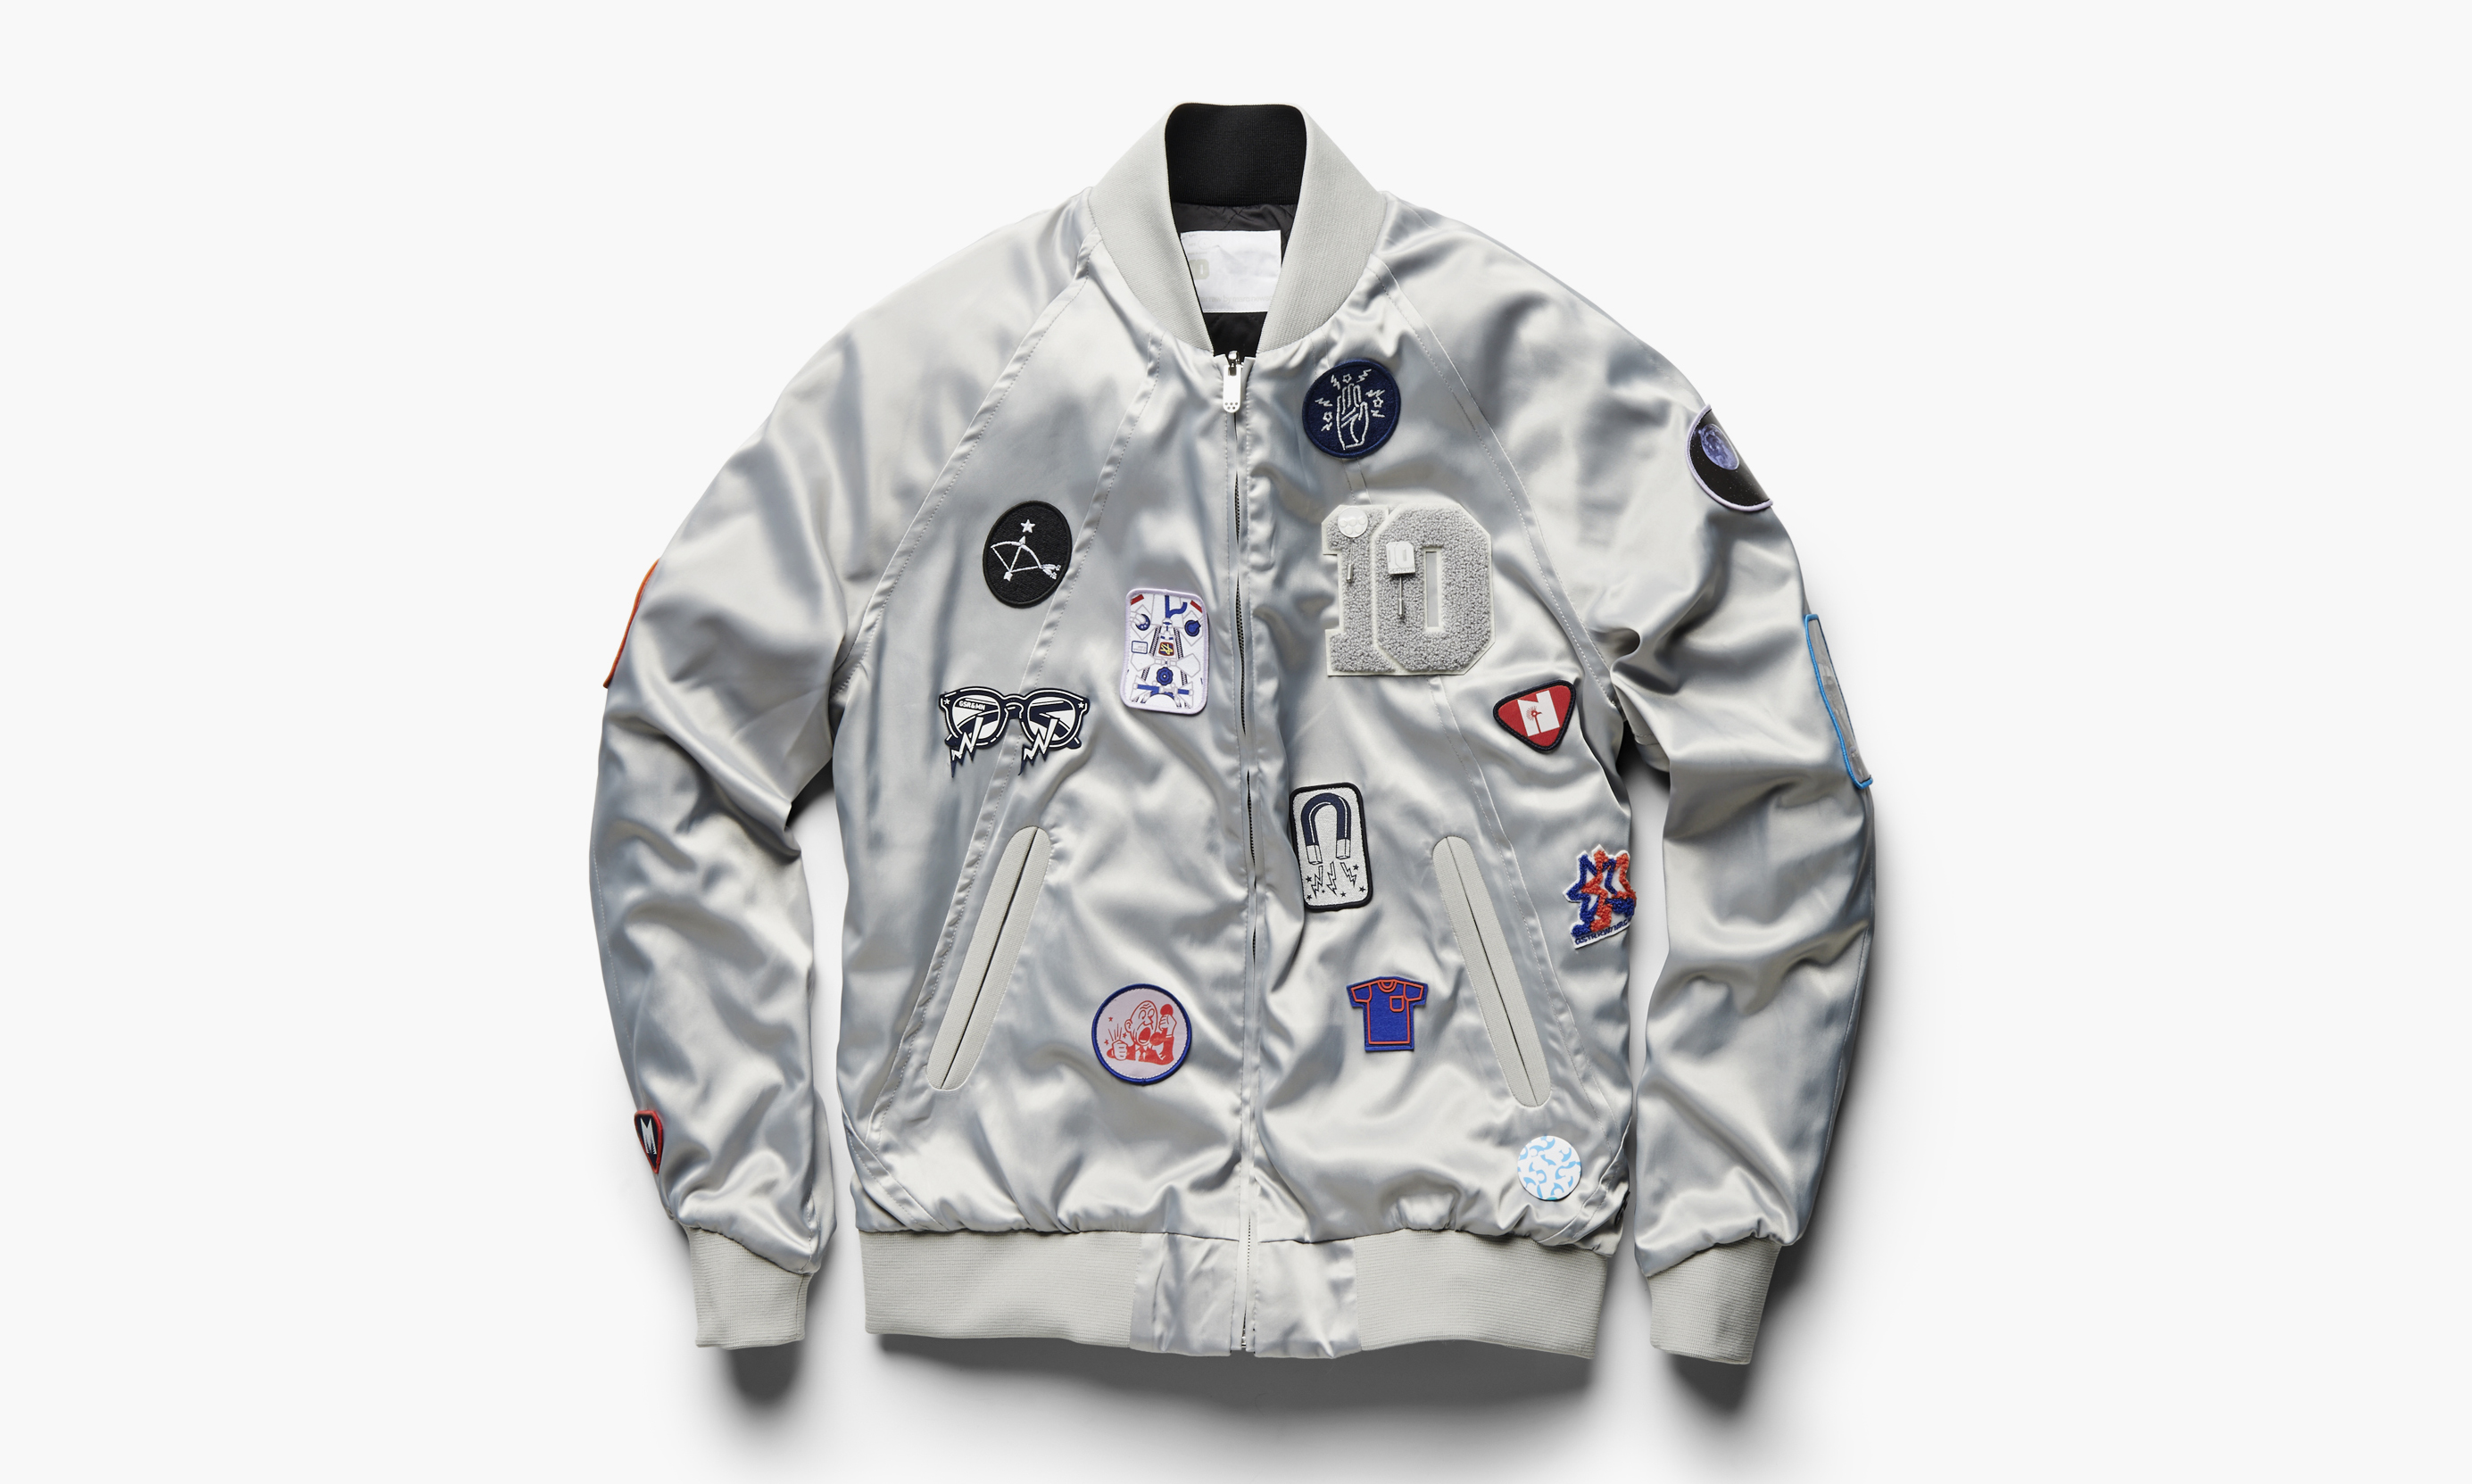 marc newson x g star raw 10th anniversary reversible tour jacket highsnobiety. Black Bedroom Furniture Sets. Home Design Ideas